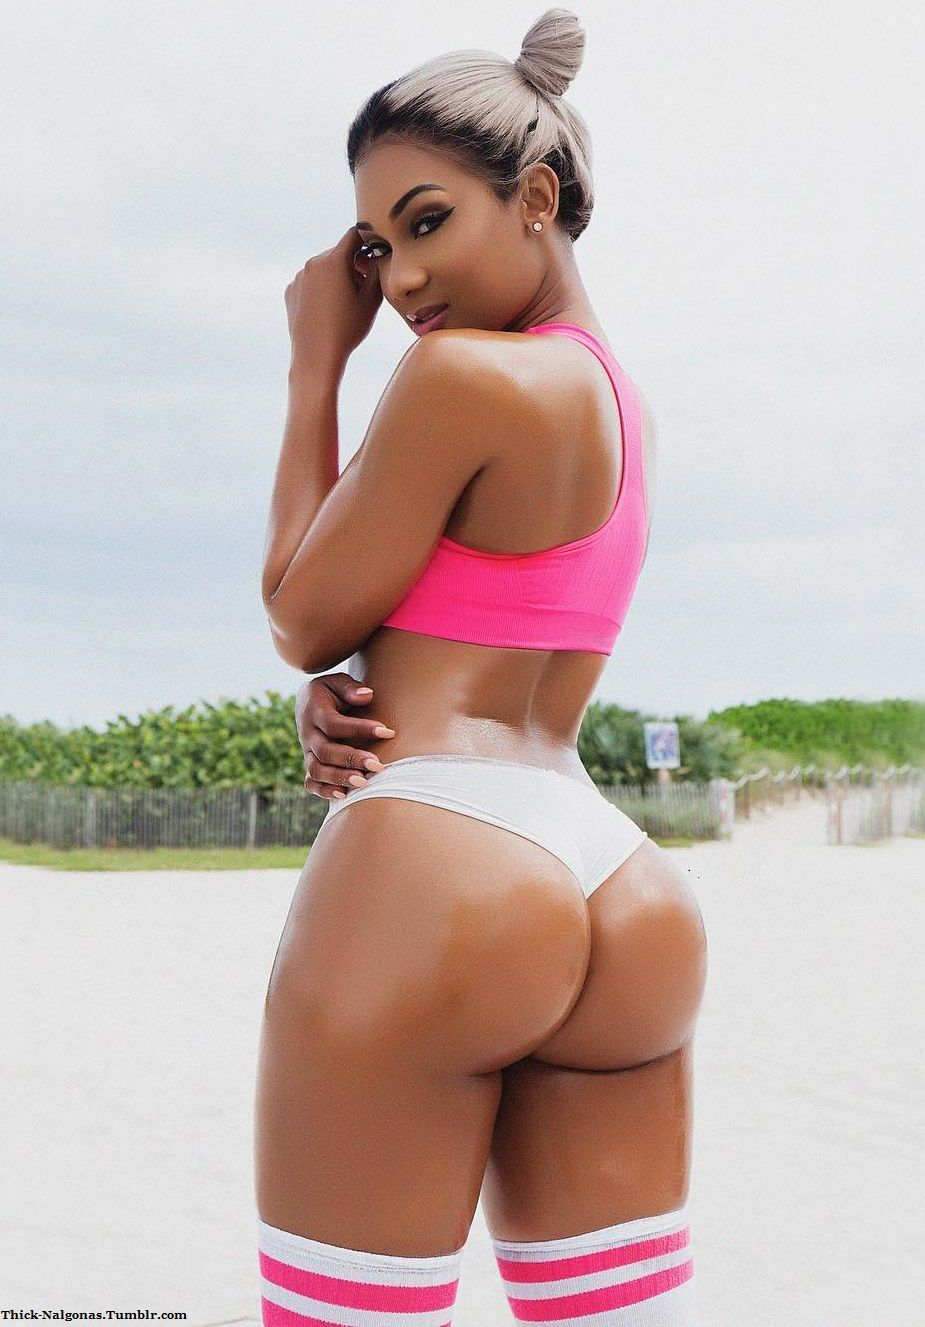 black booty pic gallery best ways to give blowjobs